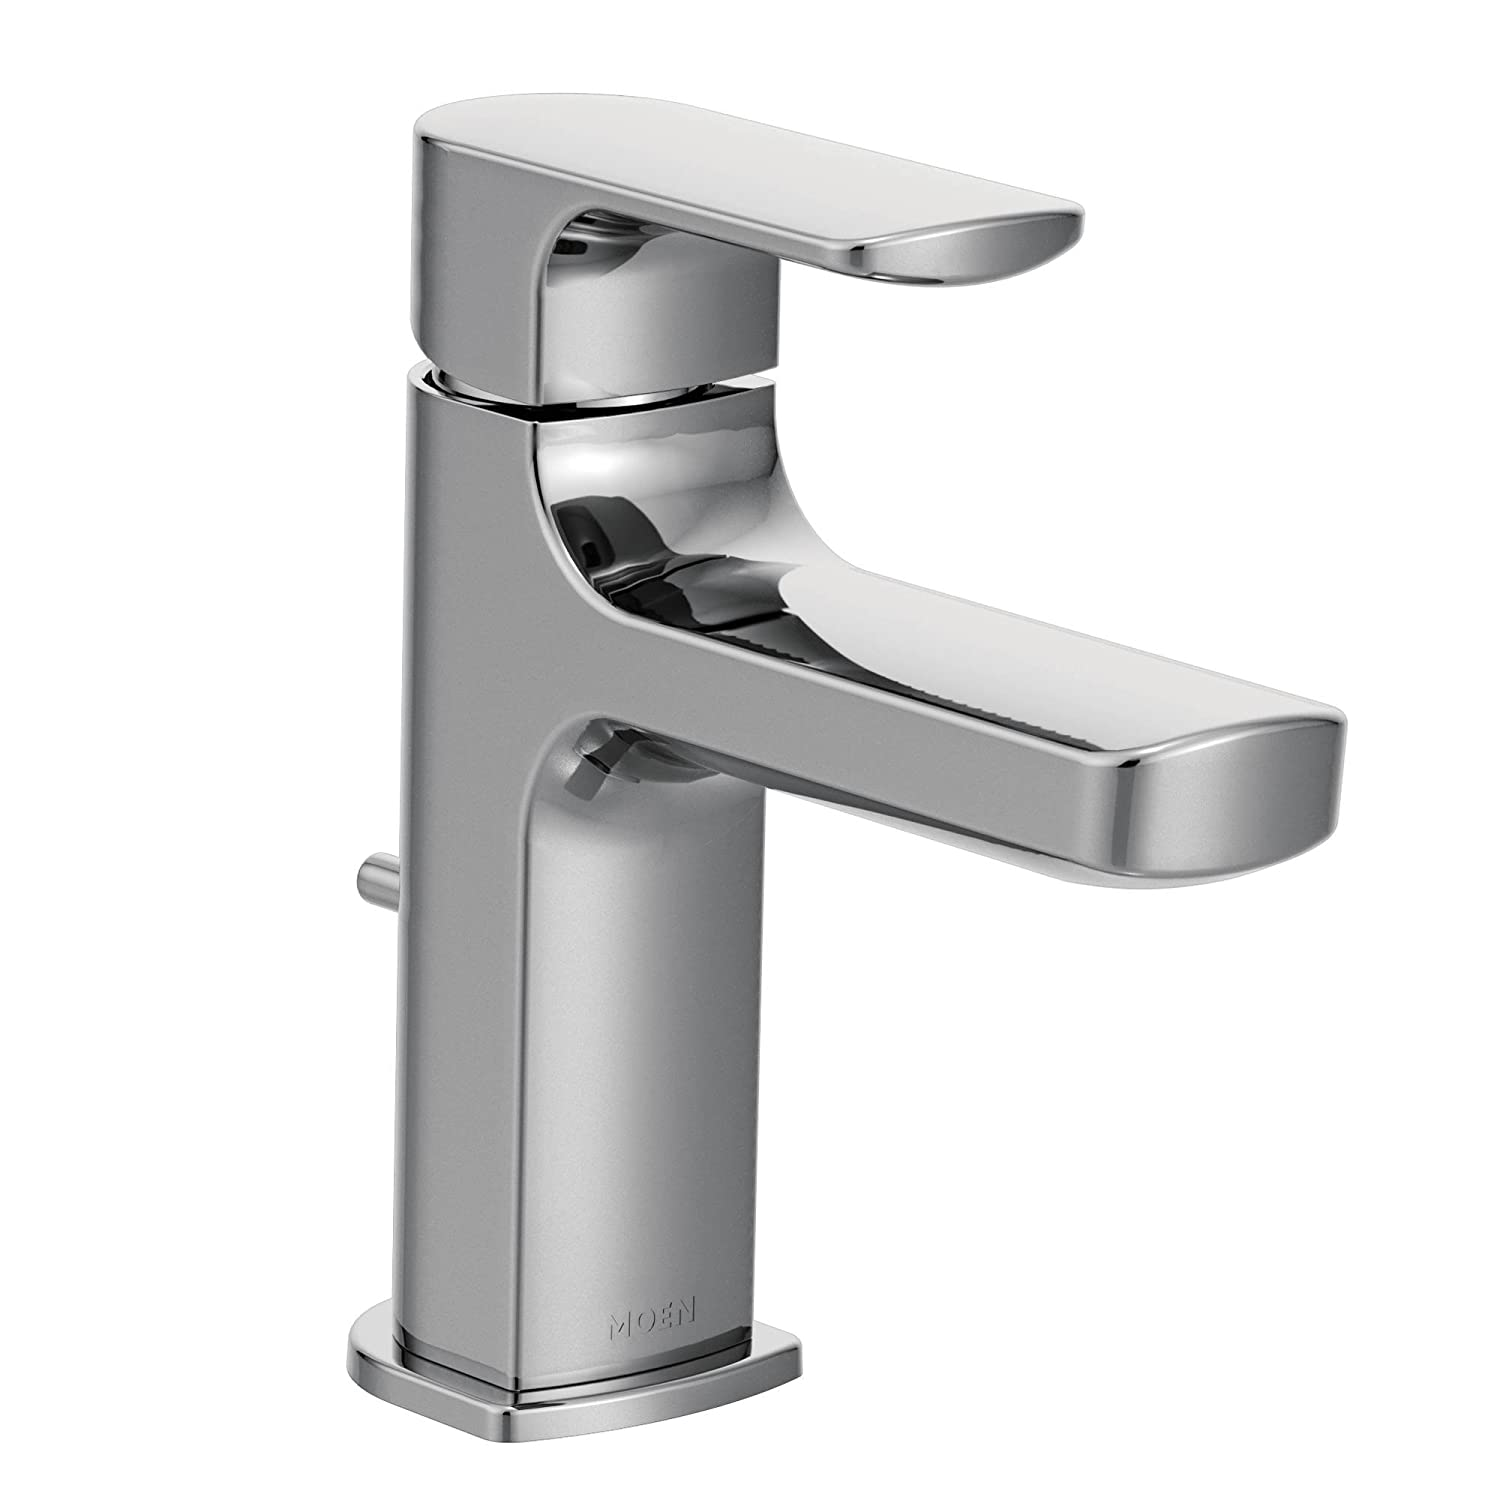 Moen 6900BN Rizon One Handle Low Arc Bathroom Faucet With Drain Assembly,  Brushed Nickel     Amazon.com Part 41